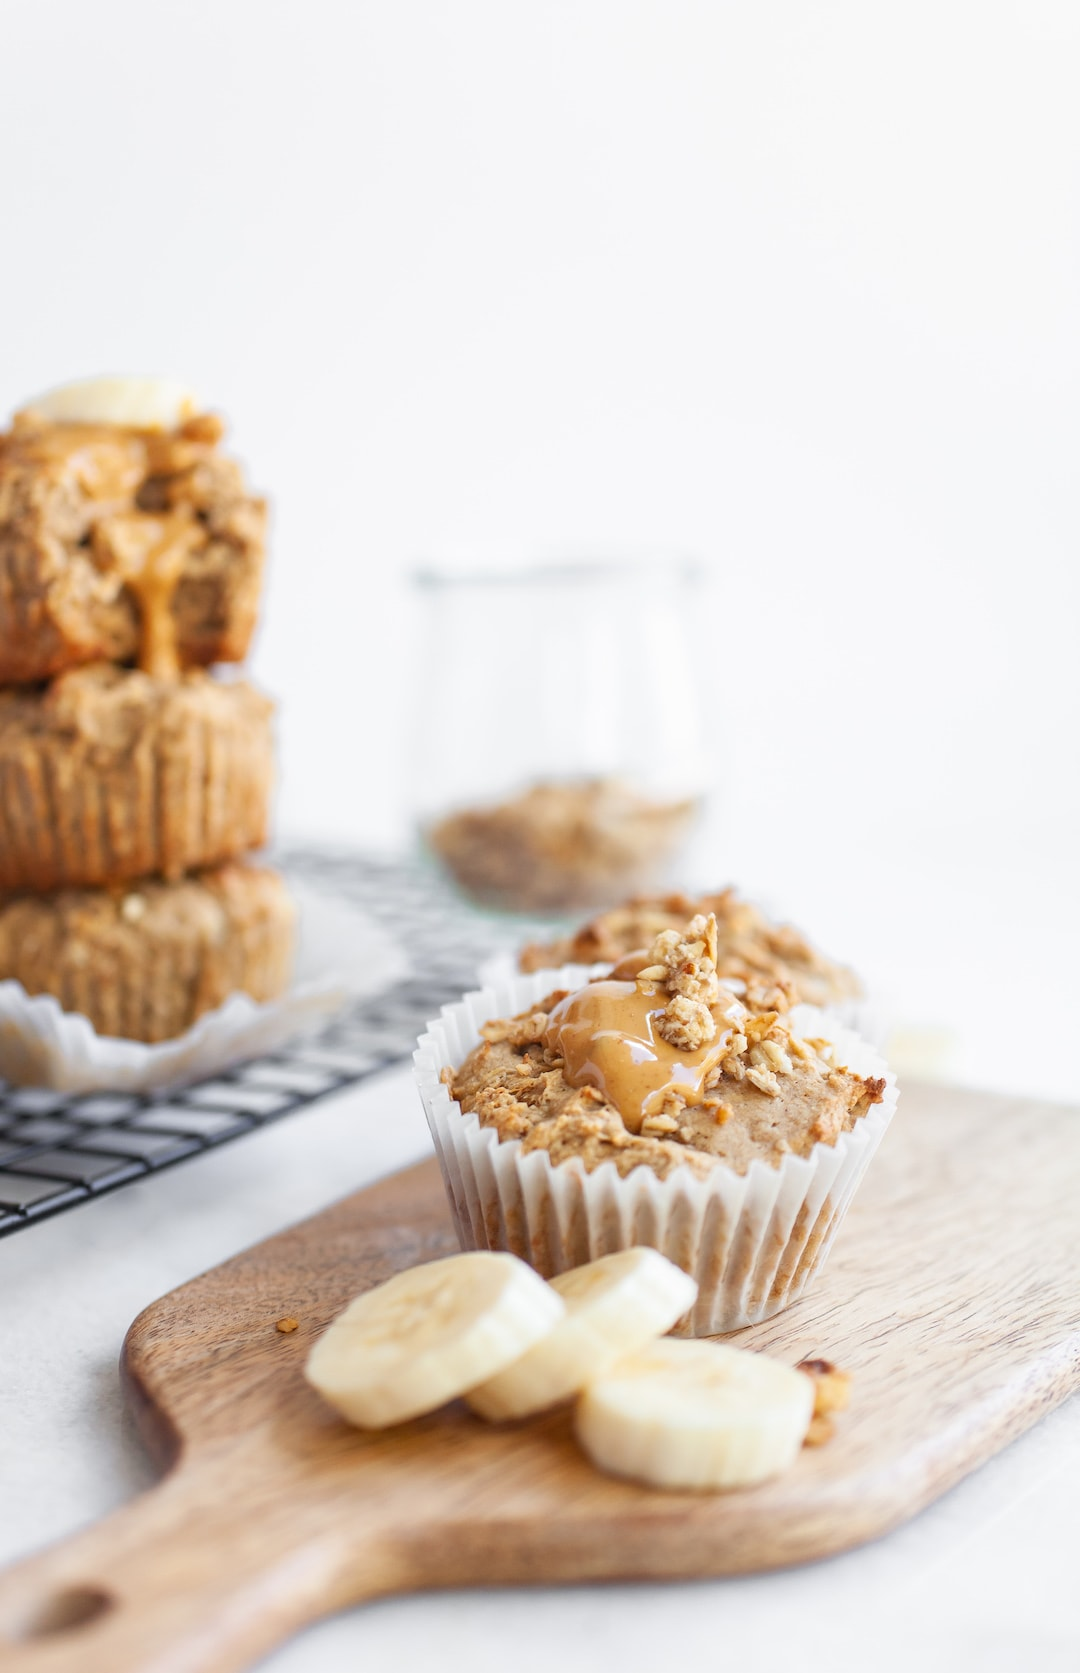 banana muffins on a wood tray with banana slices